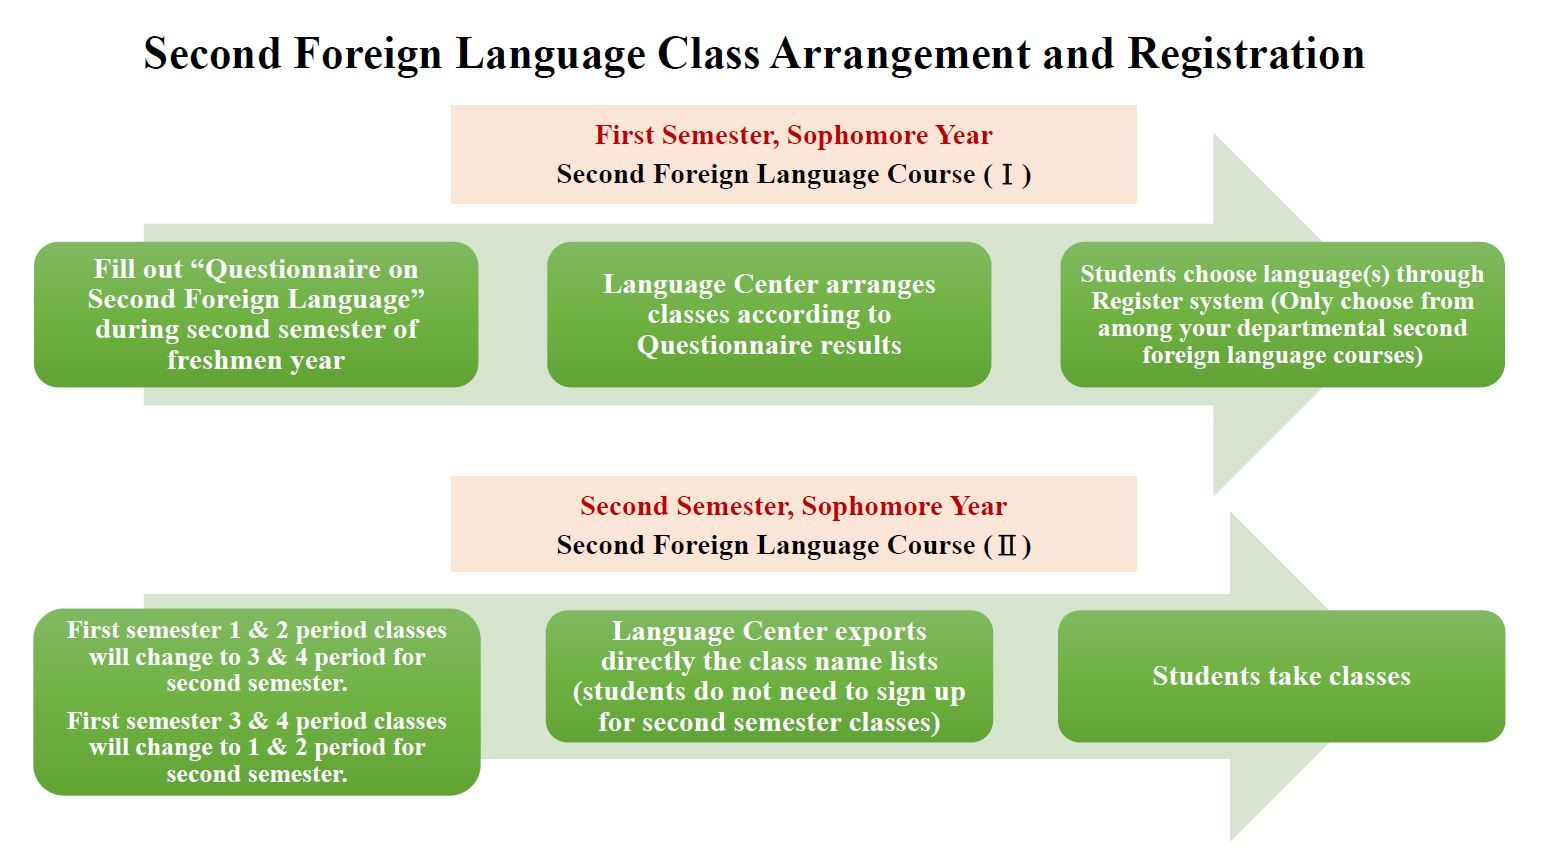 01_Second Foreign Language Class Arrangement and Registration